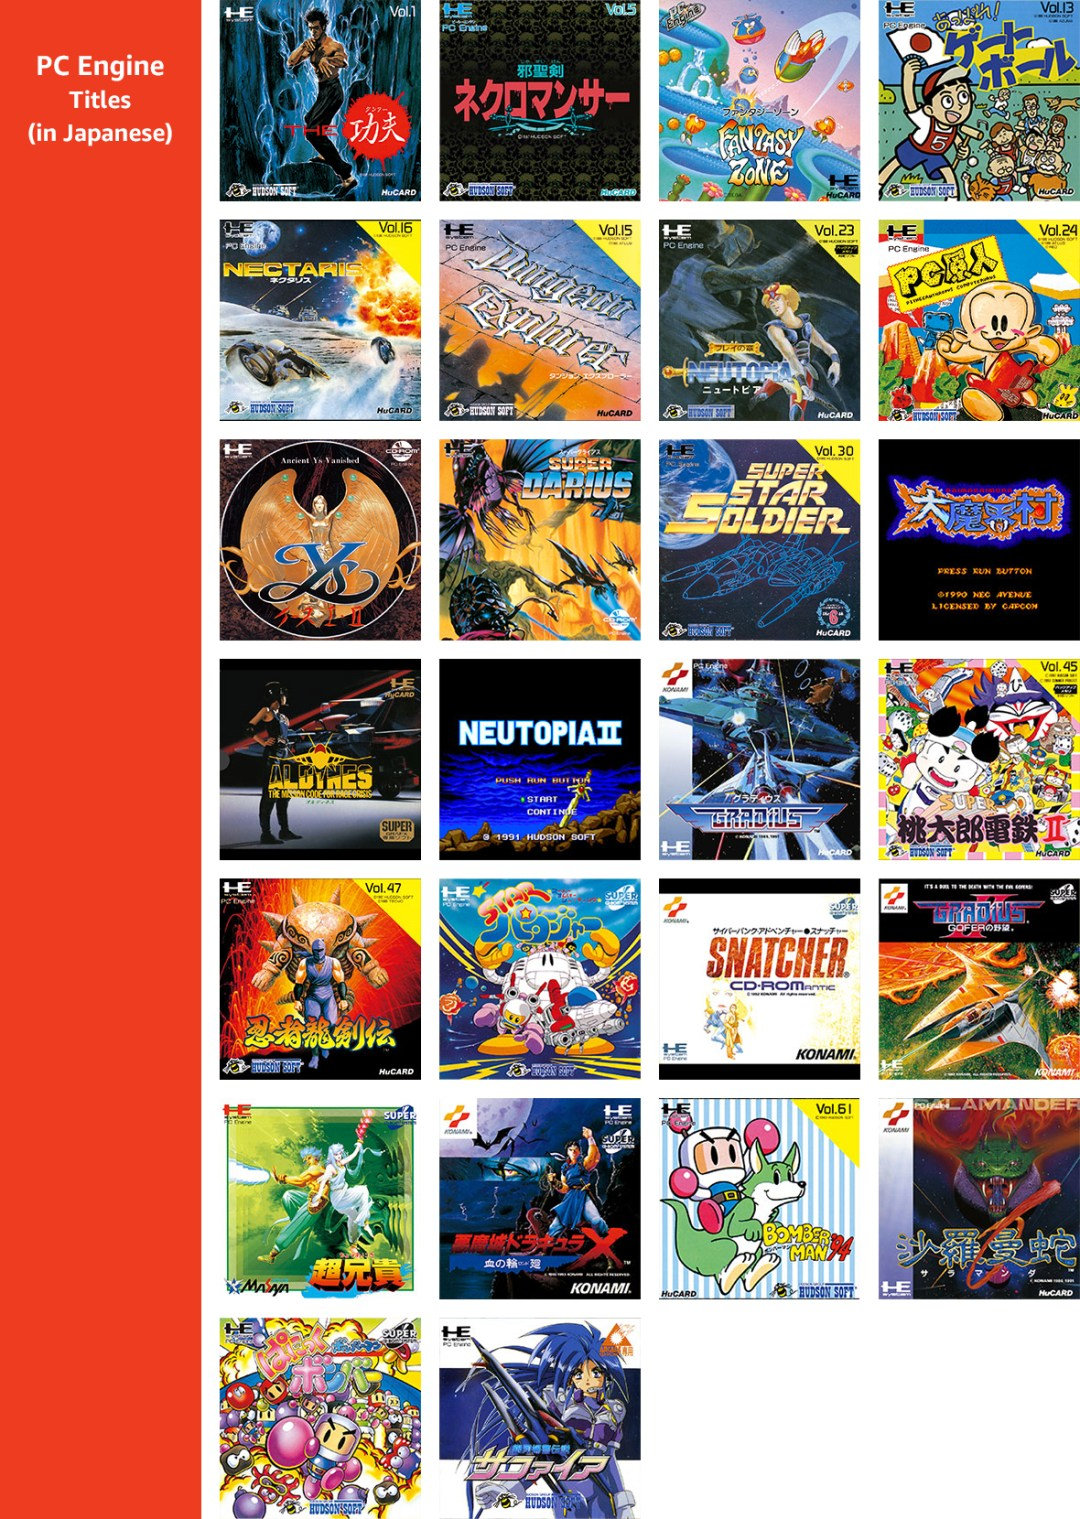 PC Engine Titles (in Japanese)